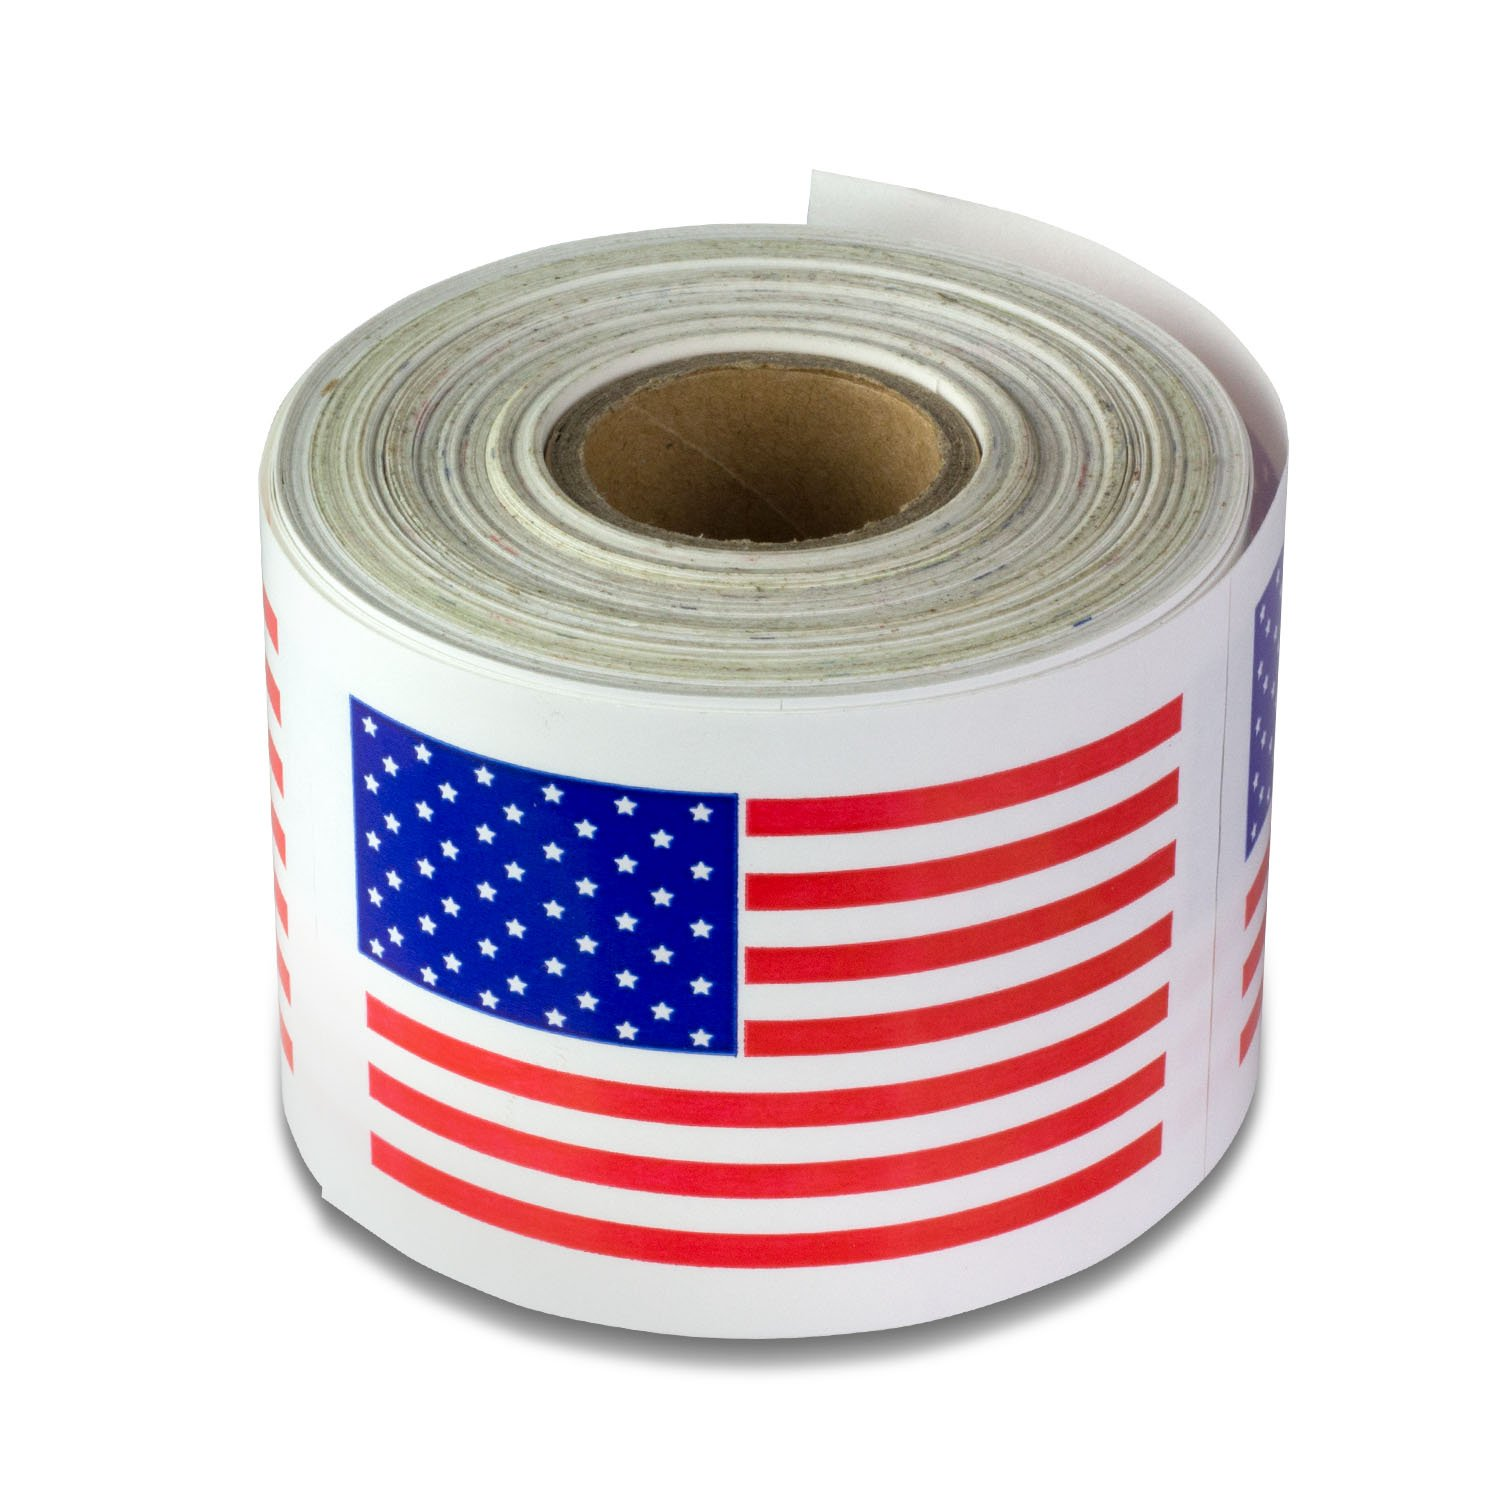 "TUCO DEALS - 2"" x 3"" Rectangle American USA Flag Logo Self Adhesive Shipping Mailing Labels / Stickers (Red/White/Blue / 300 Lables Per Roll)"